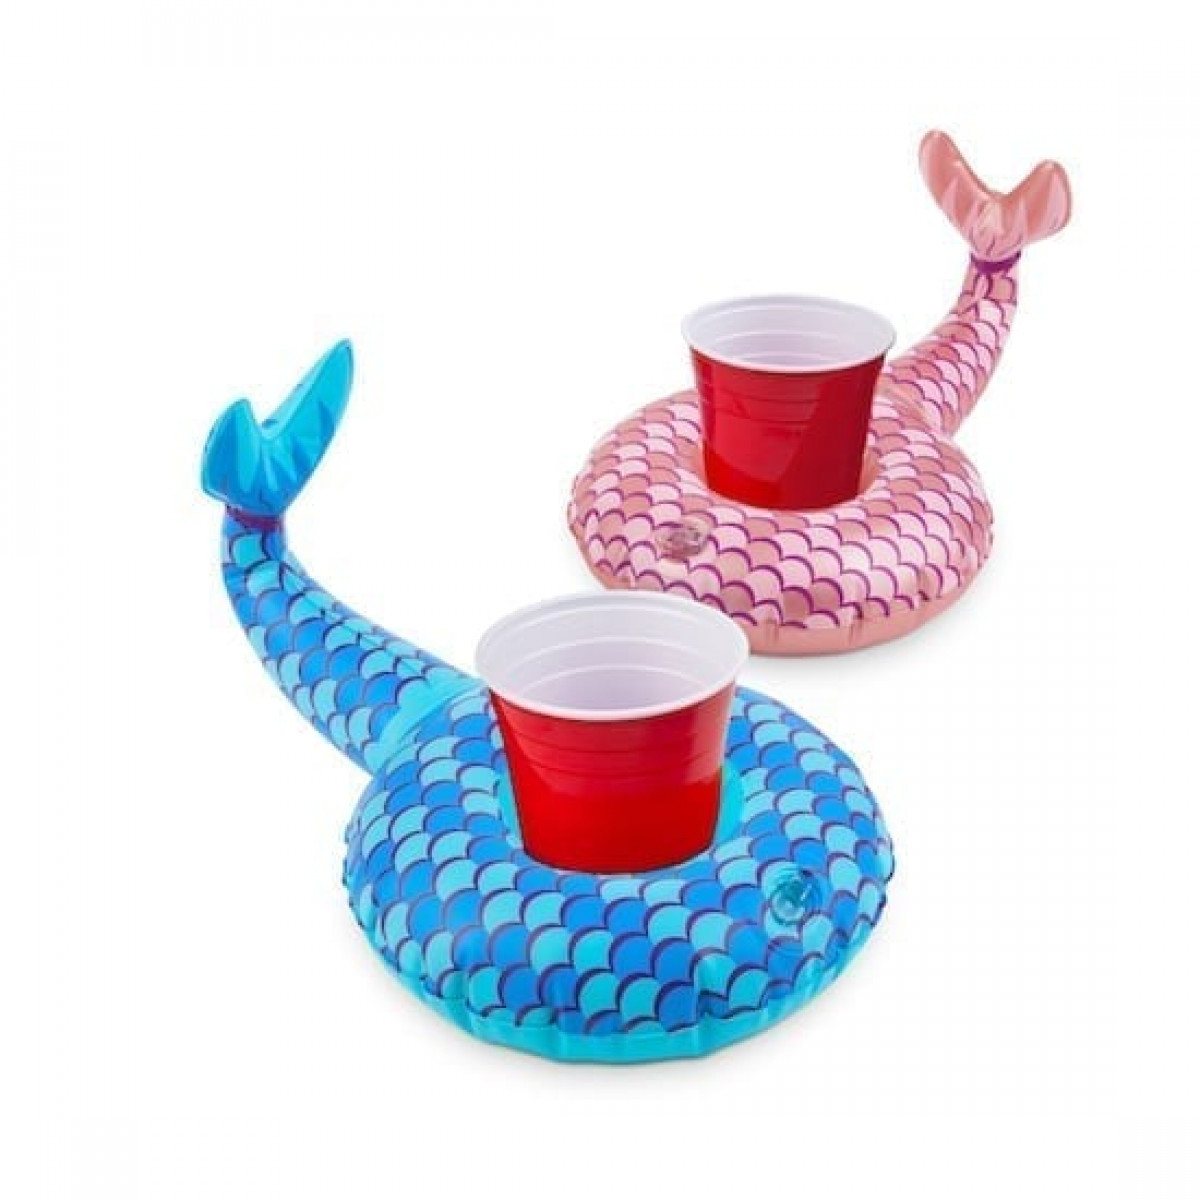 BMDF  Mermaid Tails Bev Boats Prod withcups